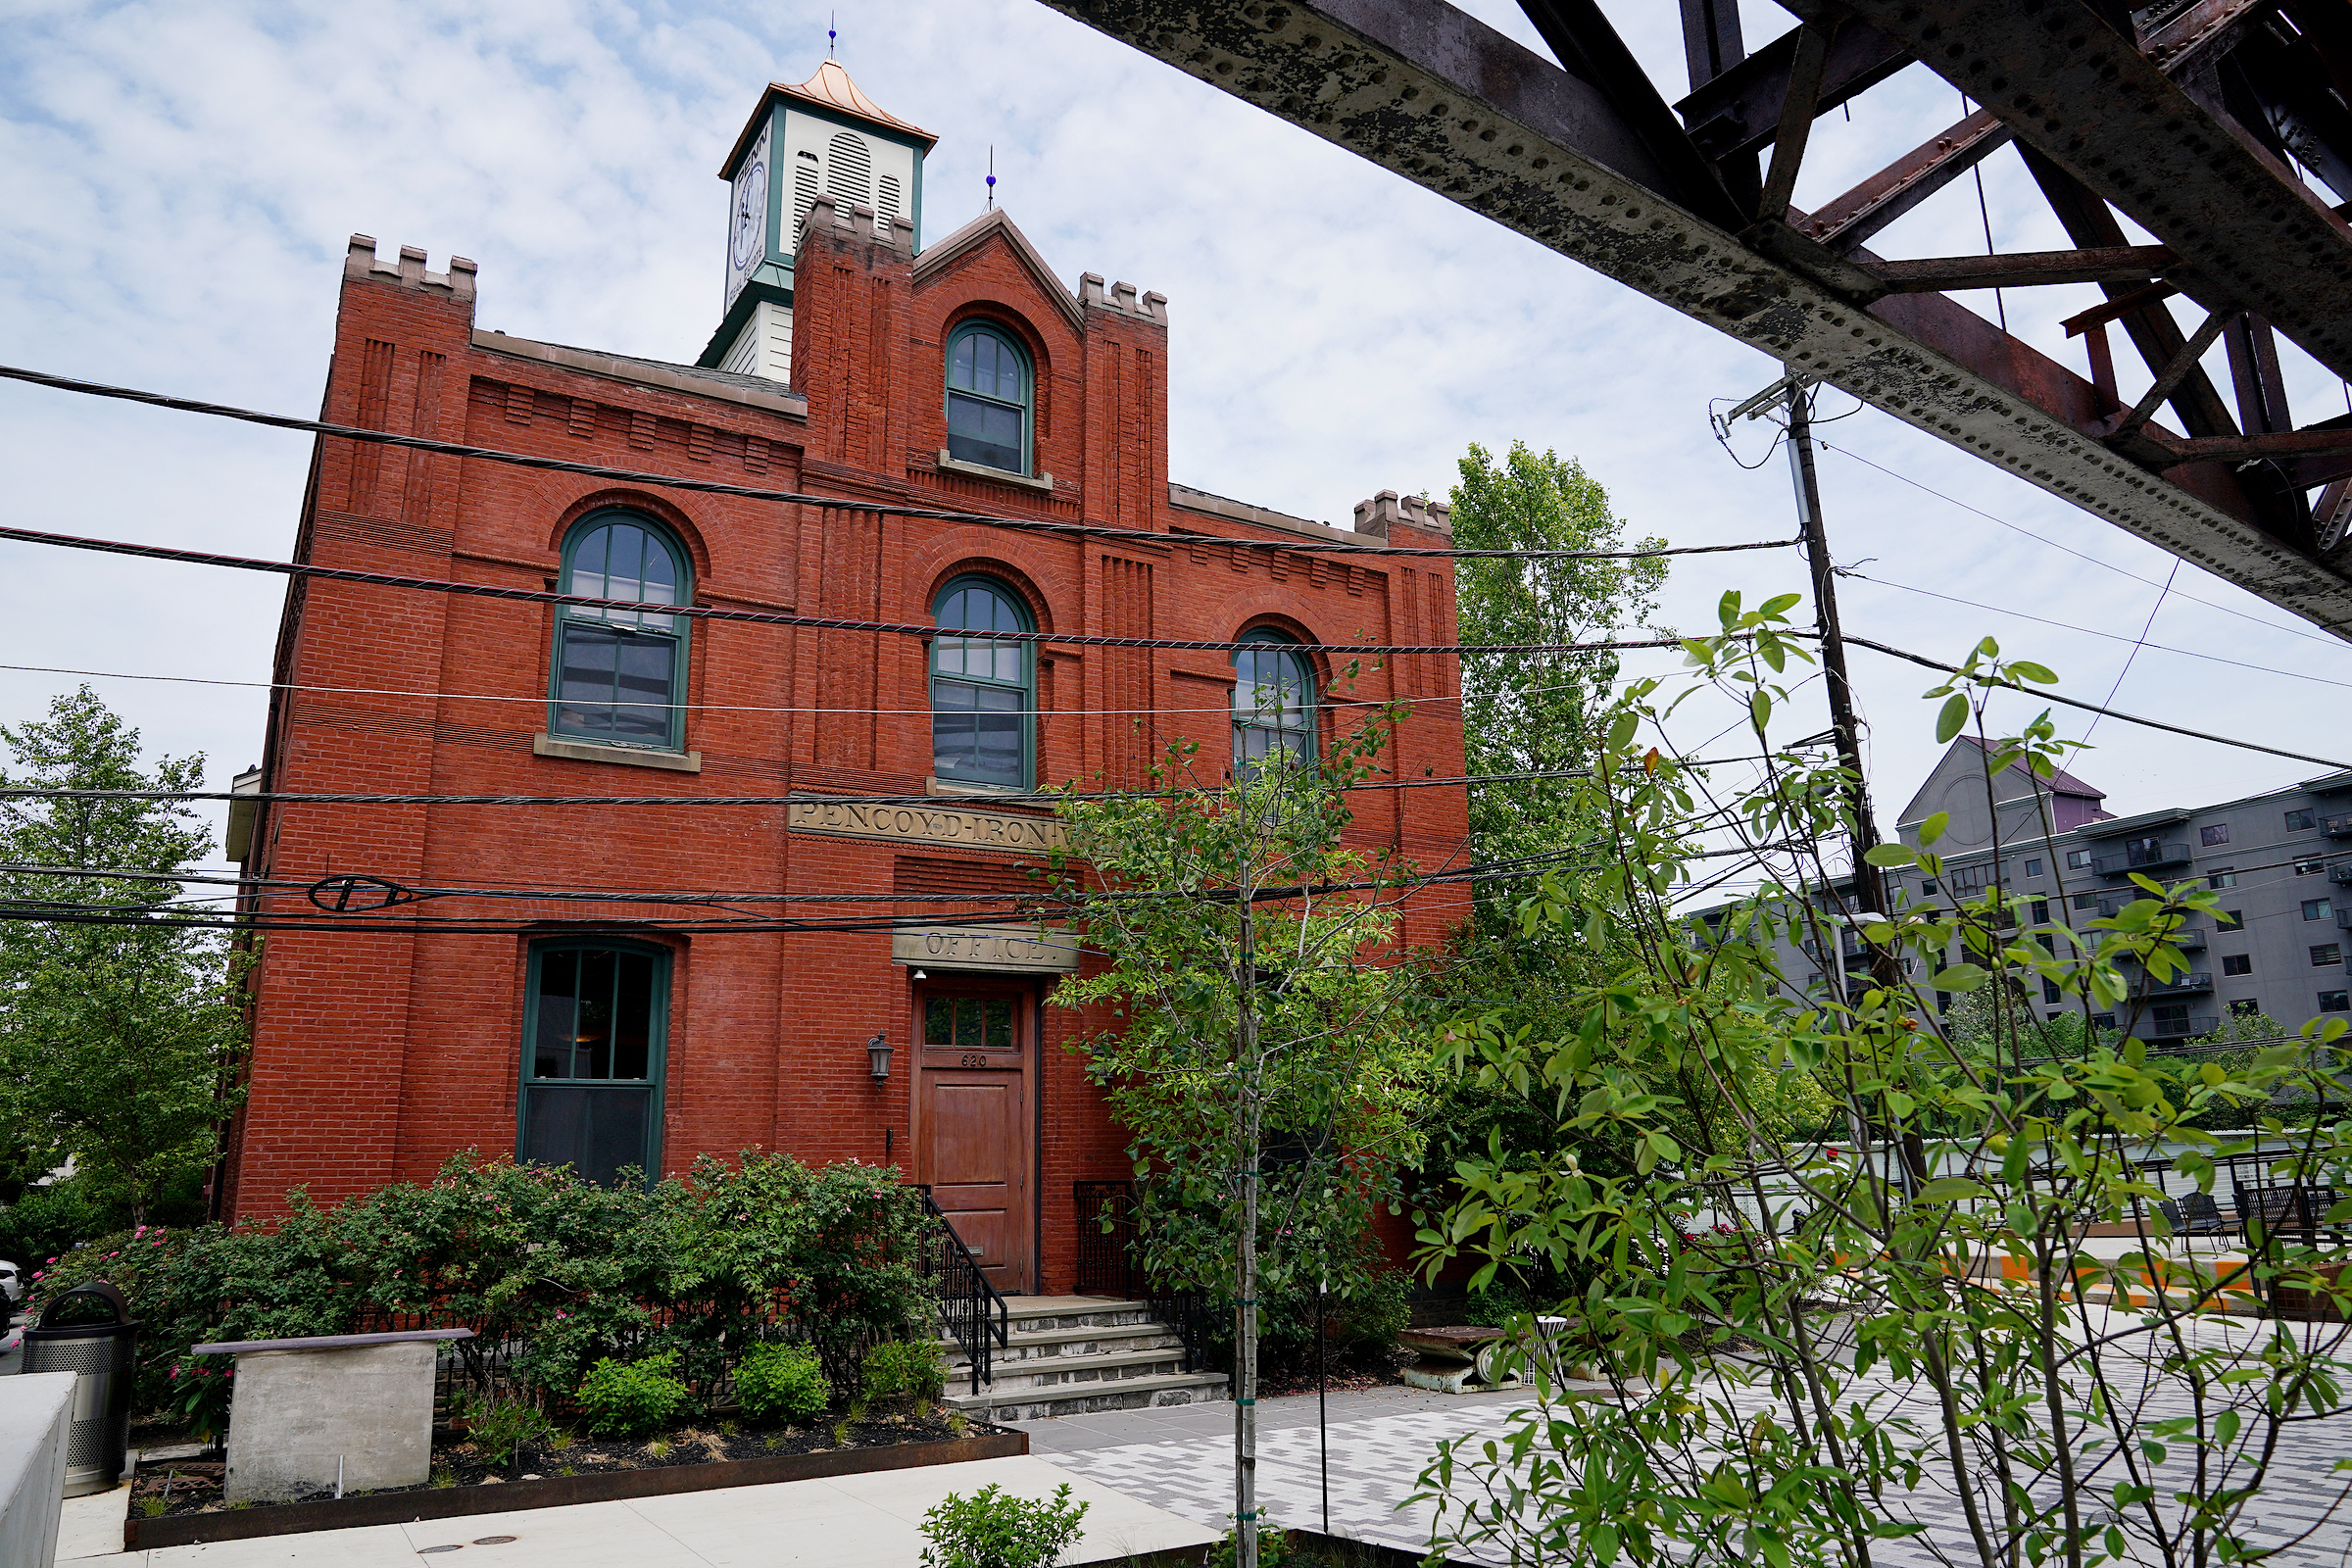 Donna Galvin moved her company's headquarters into the former offices of the Pencoyd Iron Works. Built in 1873, the charming red-brick building may have been designed by Frank Furness.